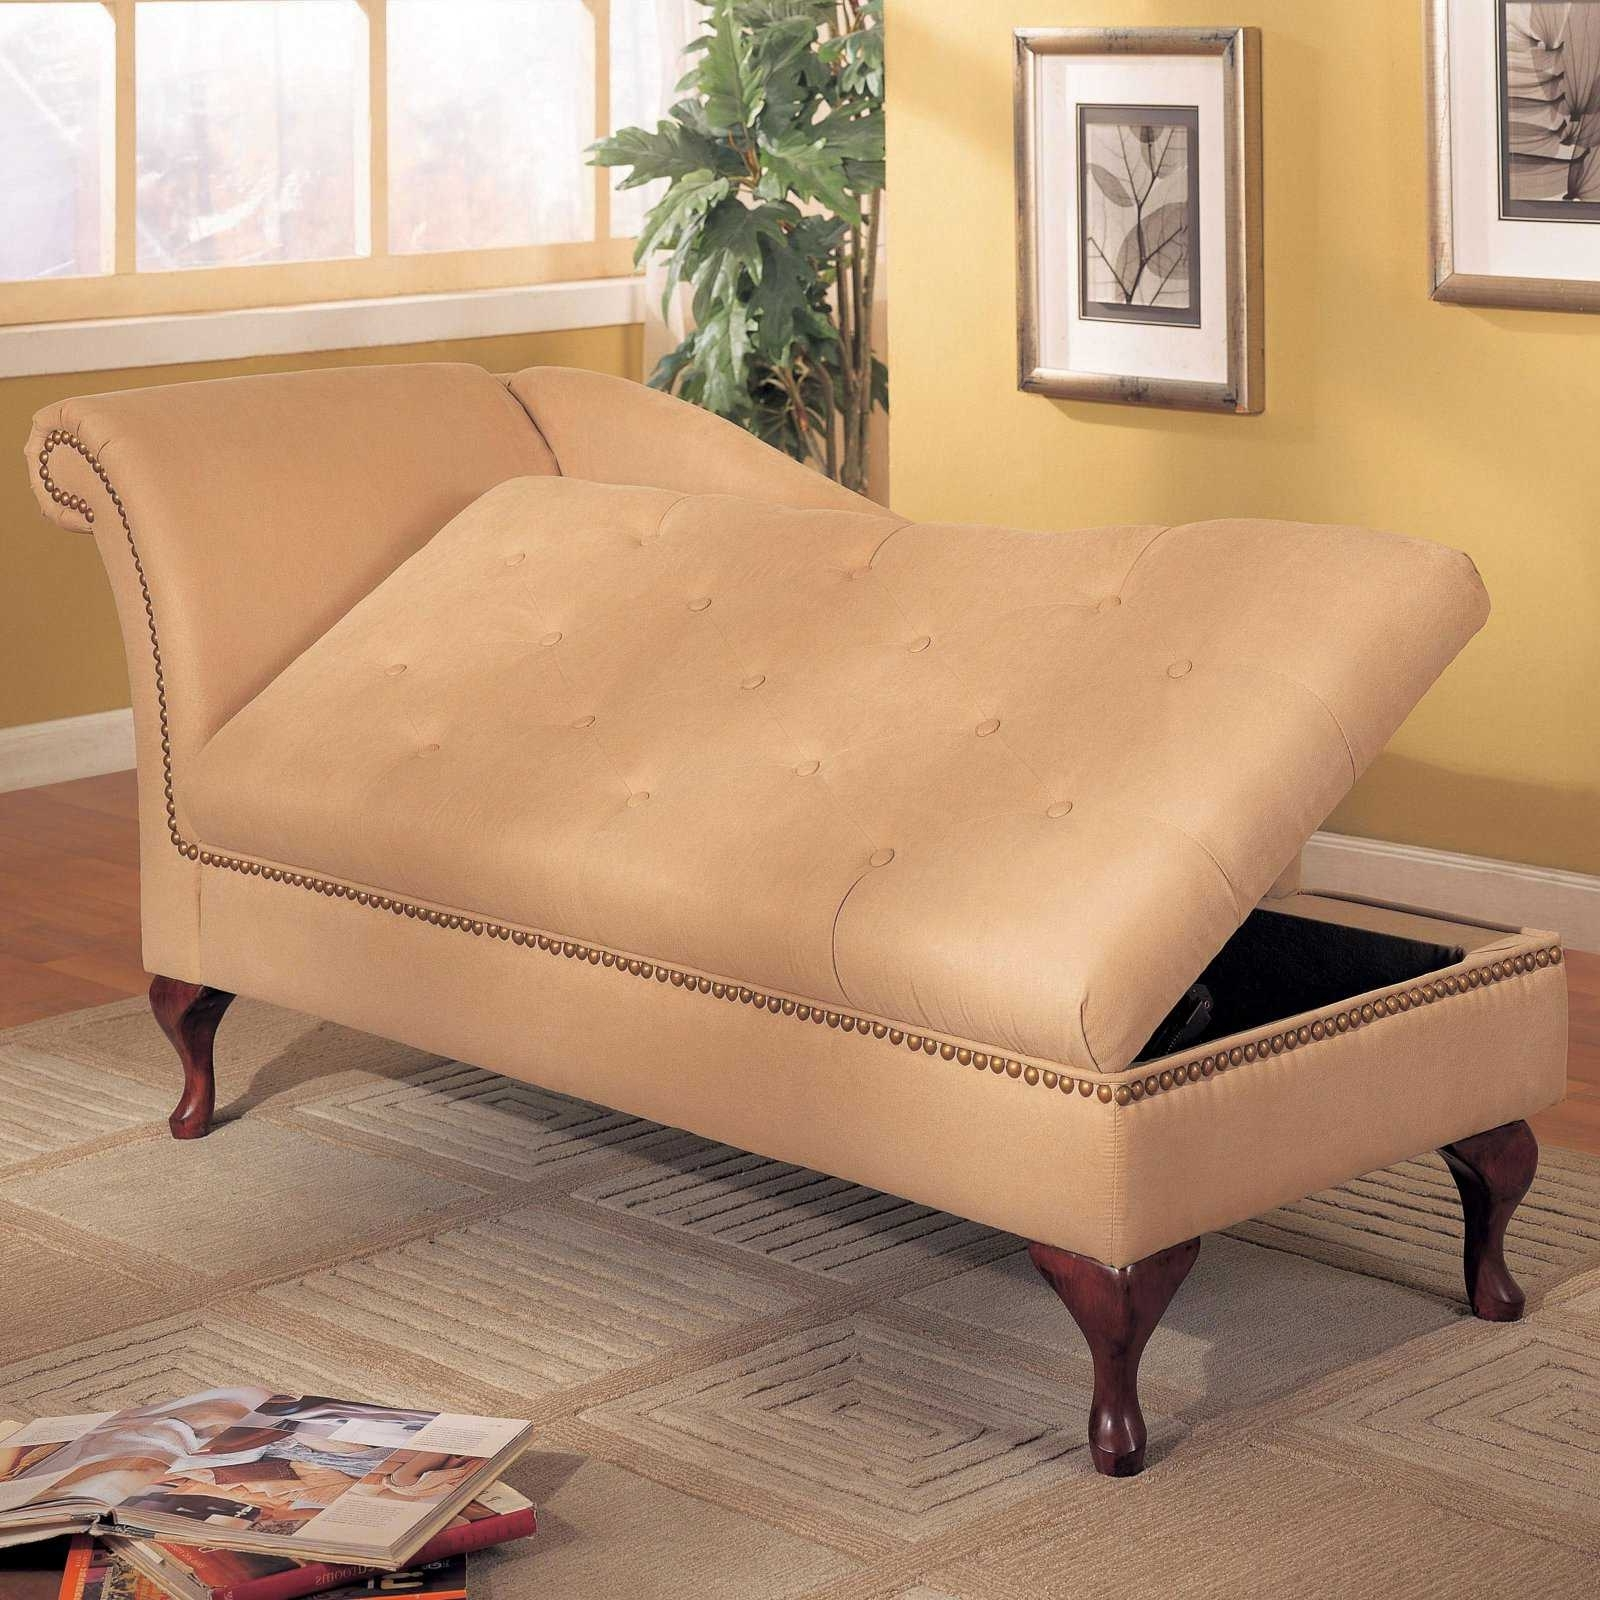 Small Chaise Lounge – Rpisite Intended For Recent Small Chaise Lounge Chairs For Bedroom (View 8 of 15)